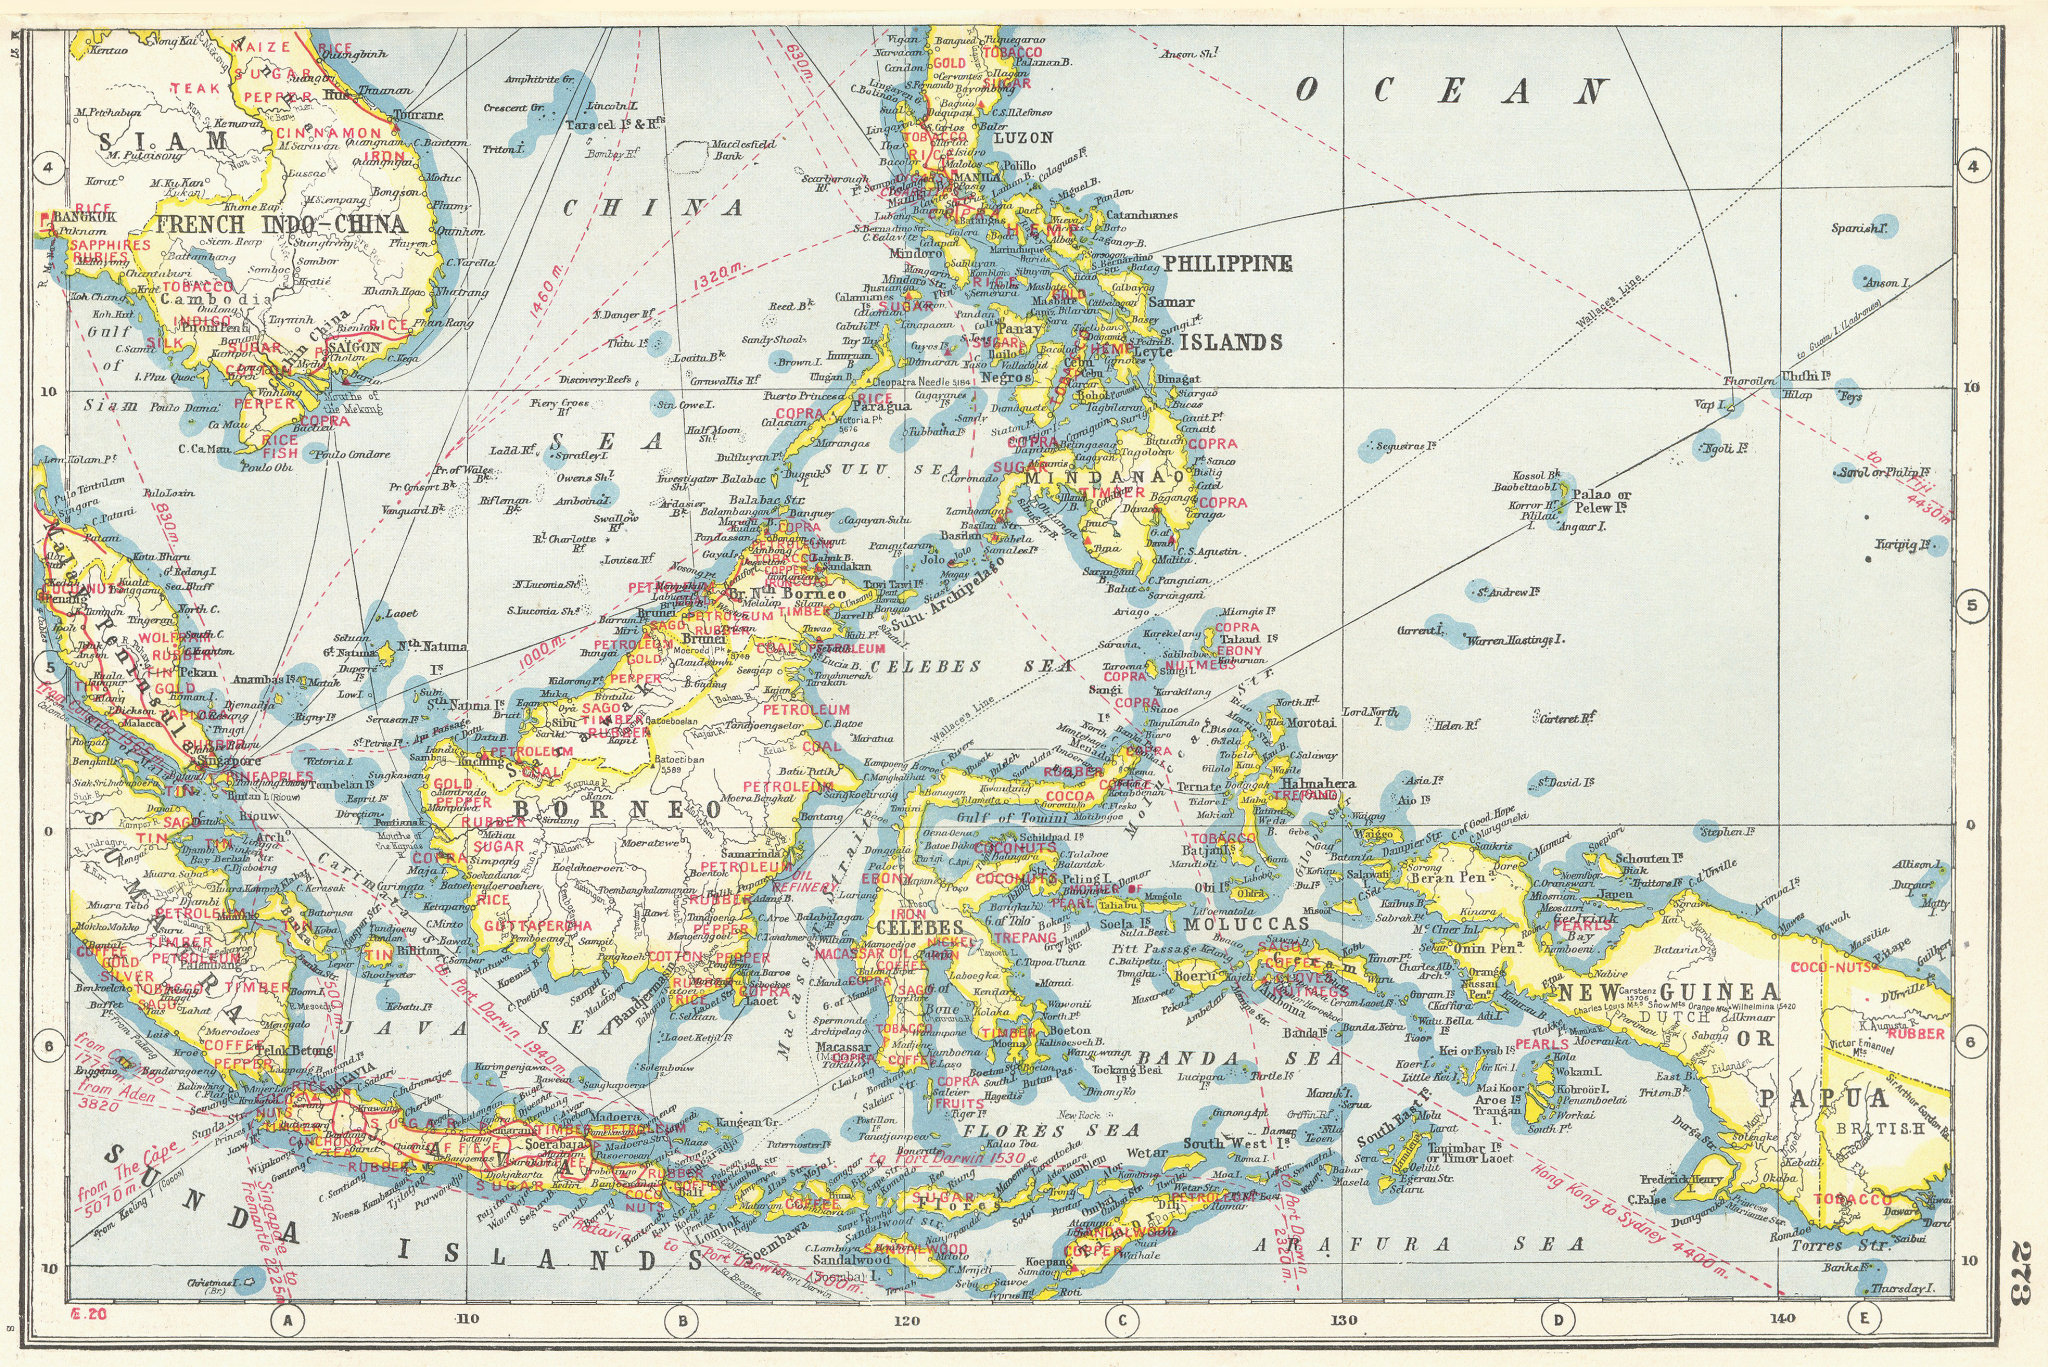 INDONESIA PHILIPPINES. South East Asia.Industrial showing key products 1920 map